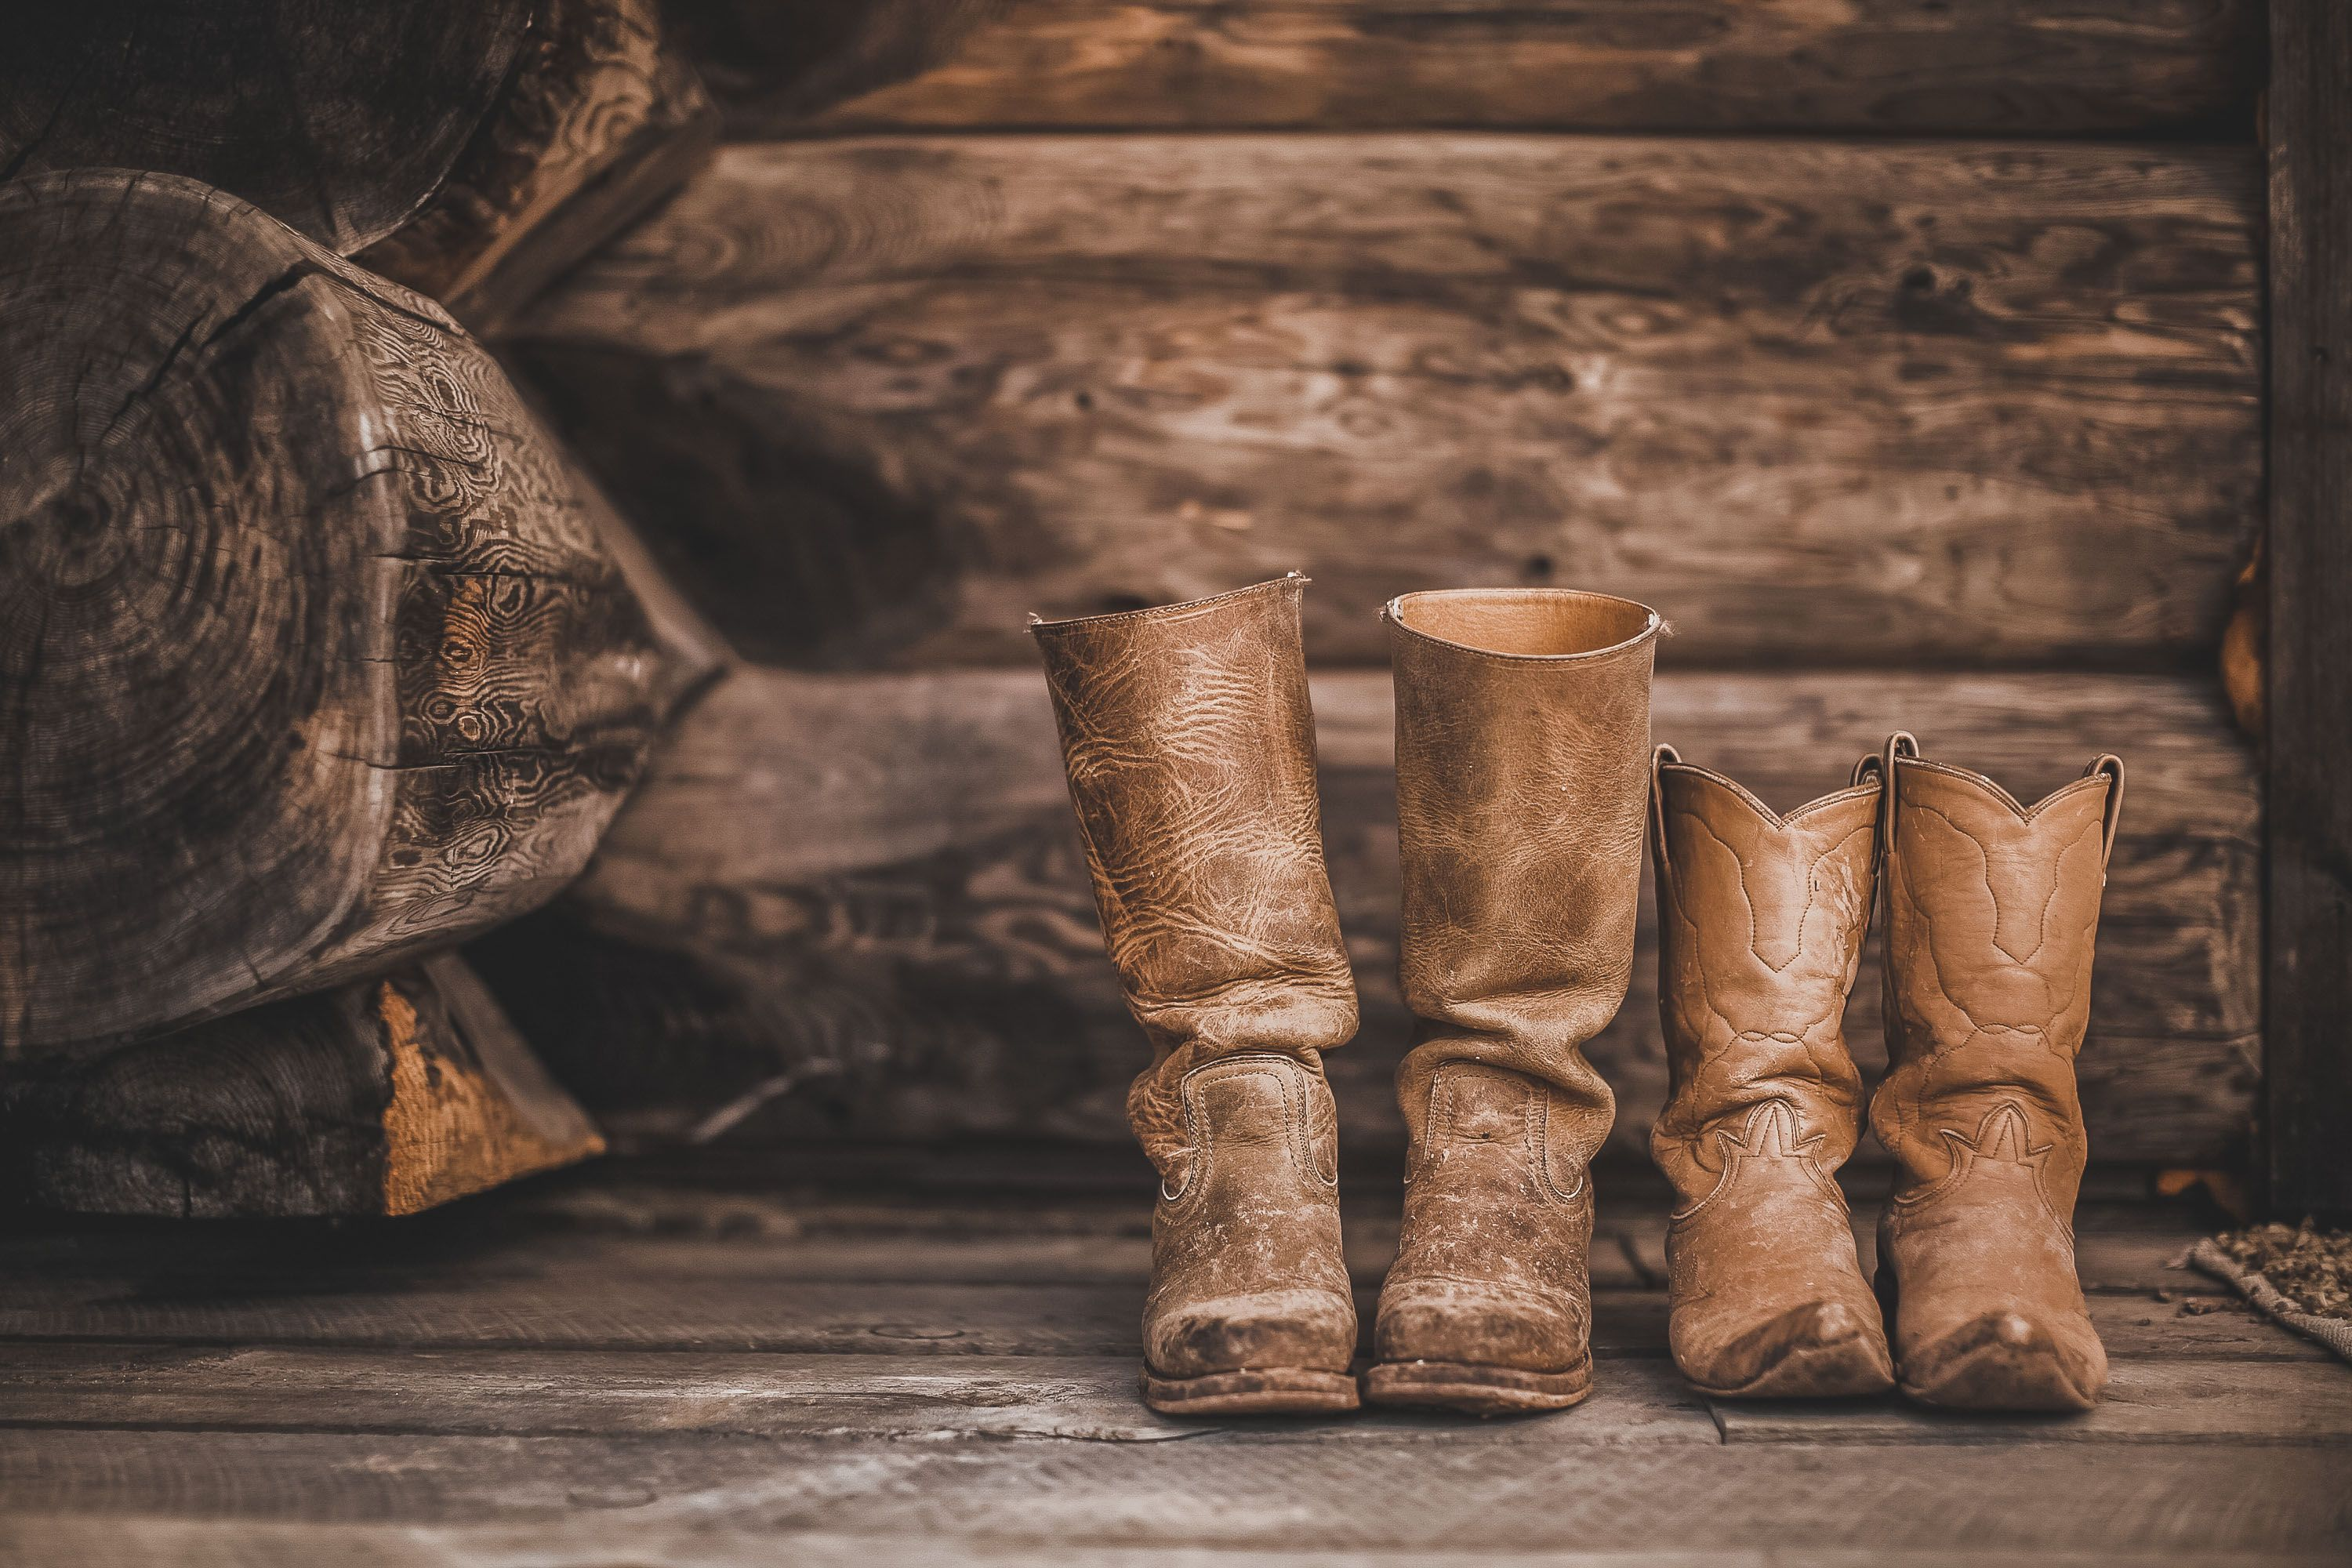 Good Boots take you good places     #cowboy #cowgirl #country #western #instamusic #instal #Boots #Good #Places